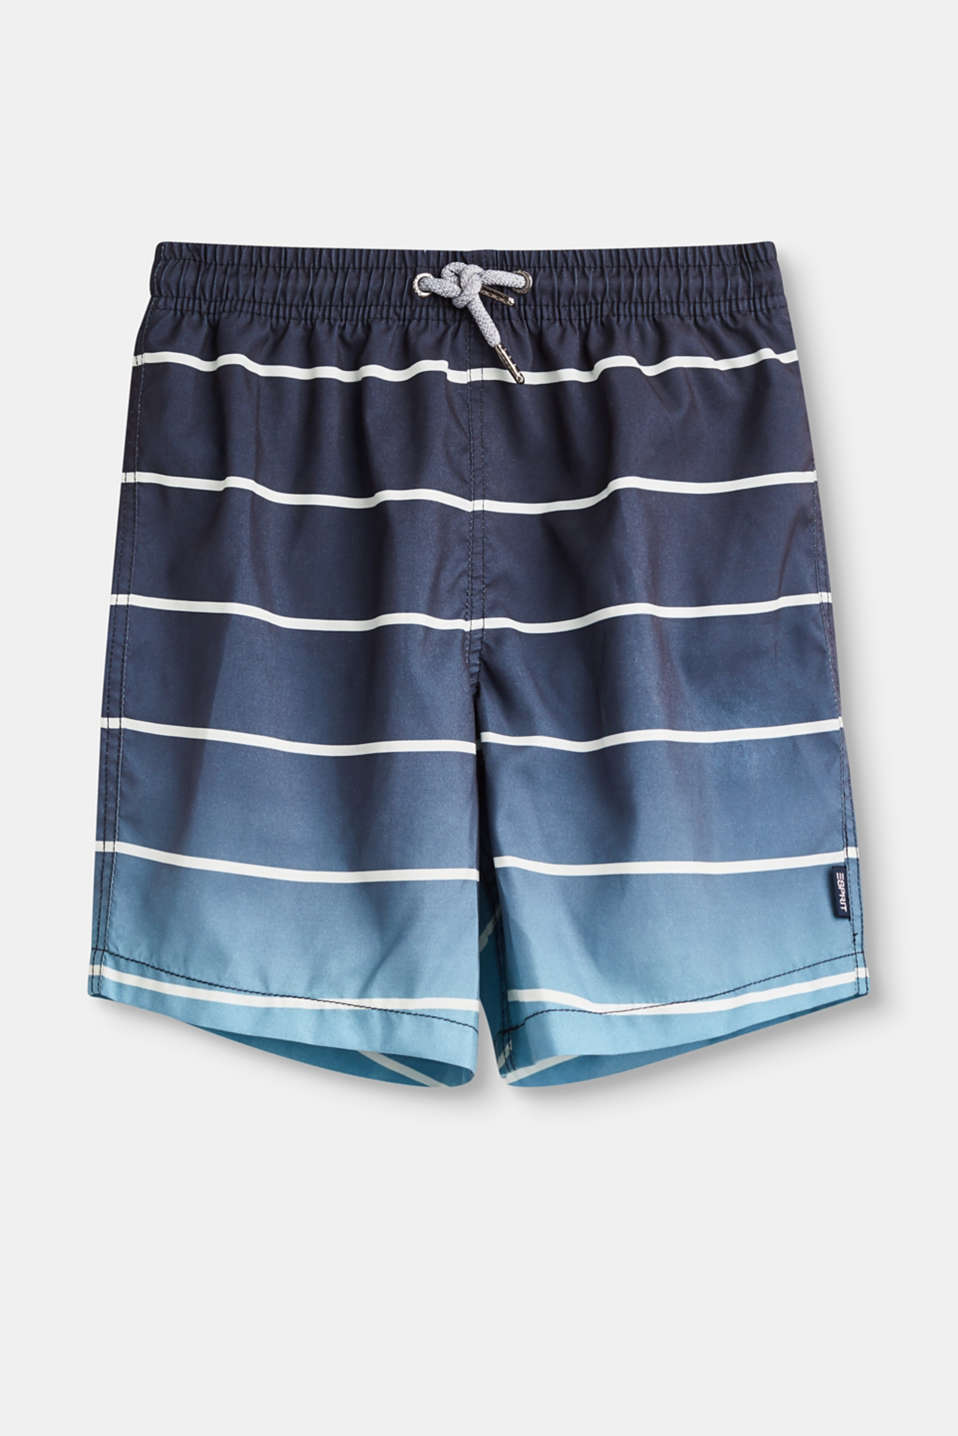 Esprit - Bermuda swim shorts with stripes